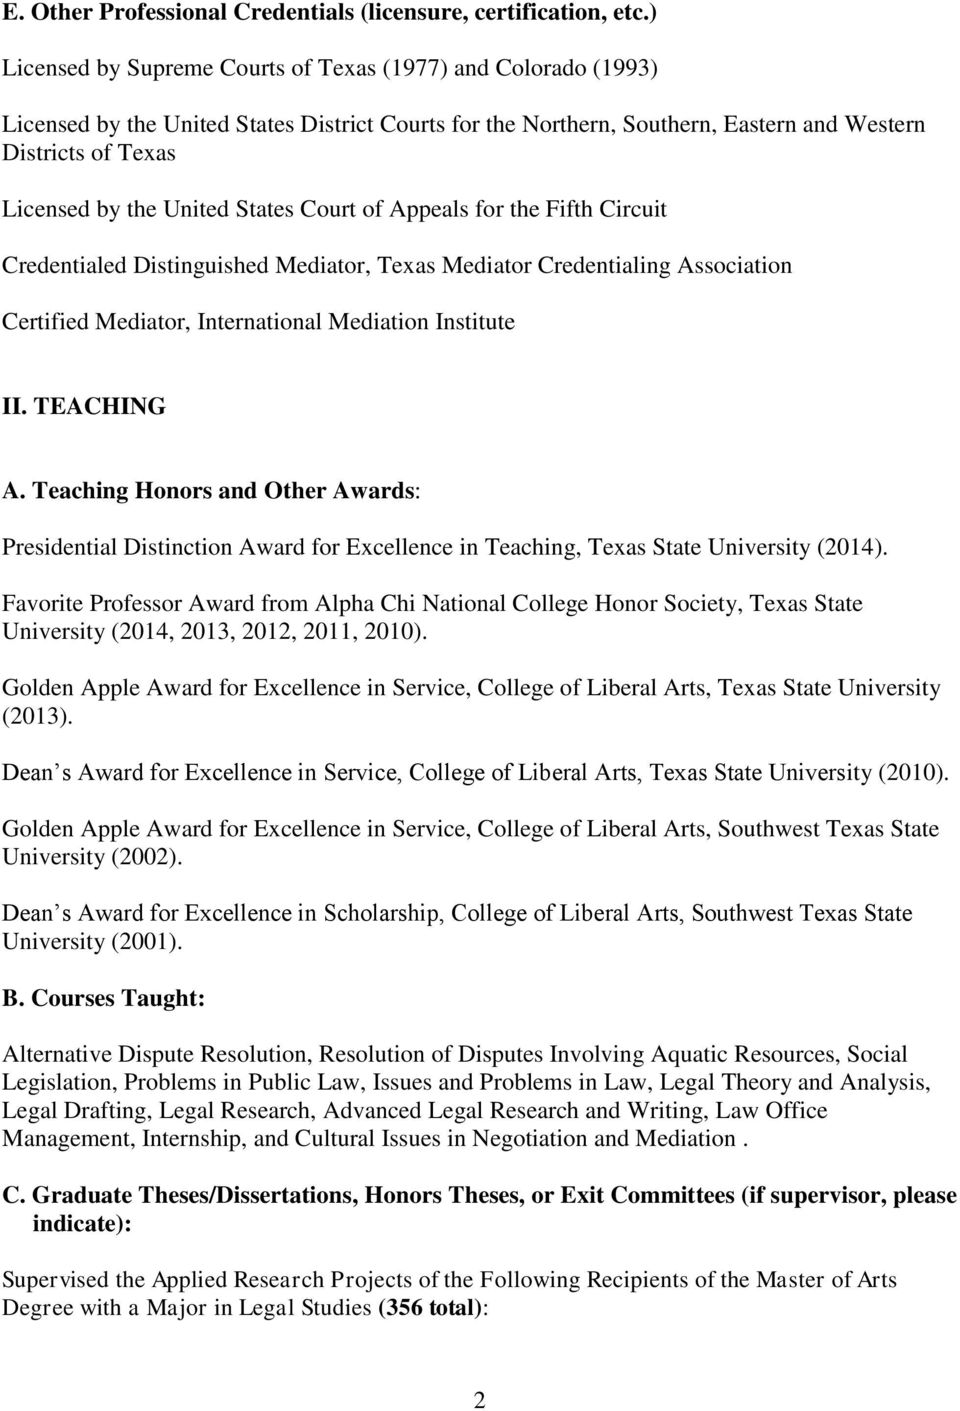 United States Court of Appeals for the Fifth Circuit Credentialed Distinguished Mediator, Texas Mediator Credentialing Association Certified Mediator, International Mediation Institute II. TEACHING A.